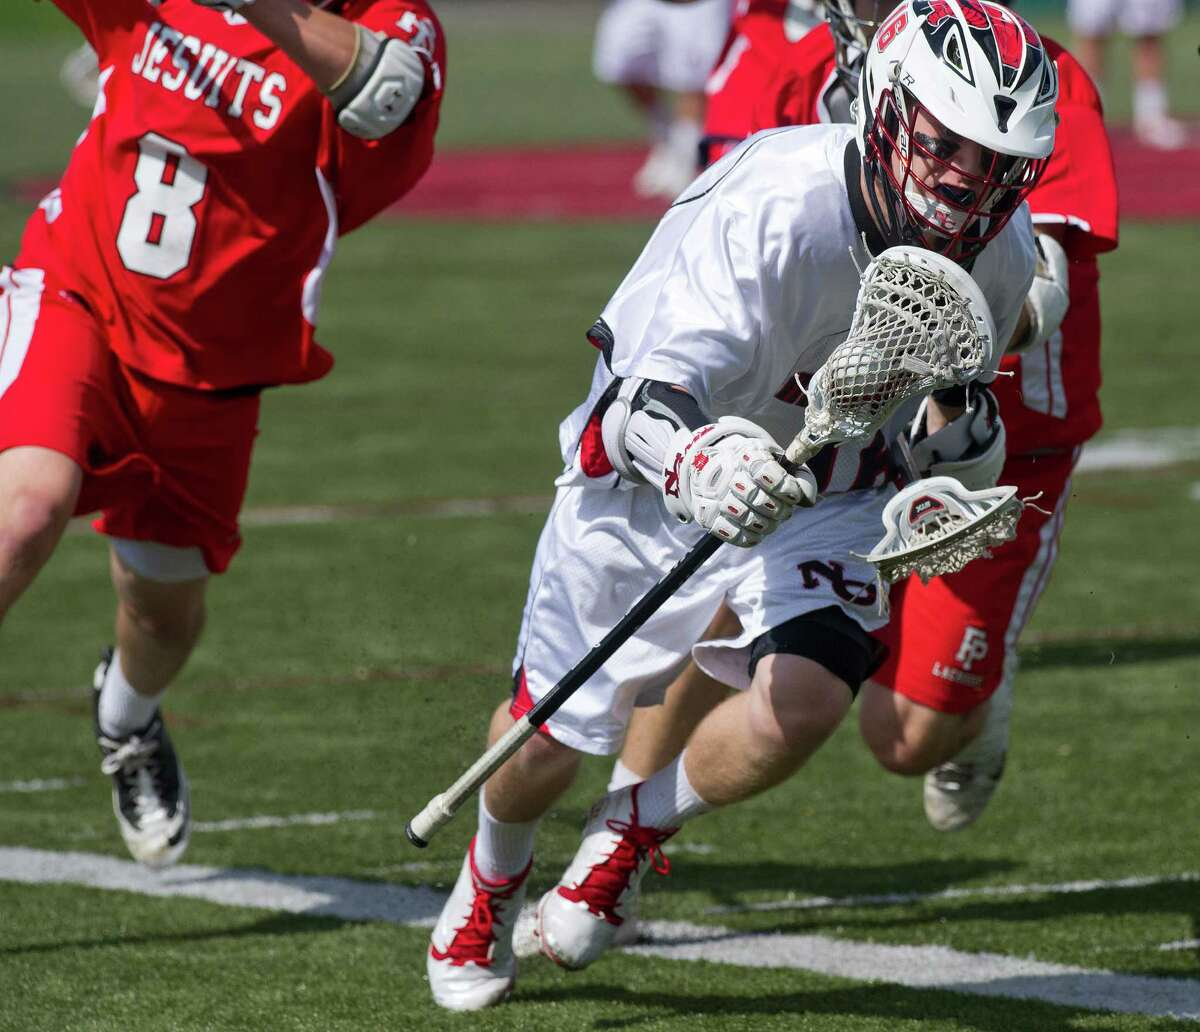 New Canaan's Harry Stanton controls the ball during Saturday's lacrosse game against Fairfield Prep on May 17.